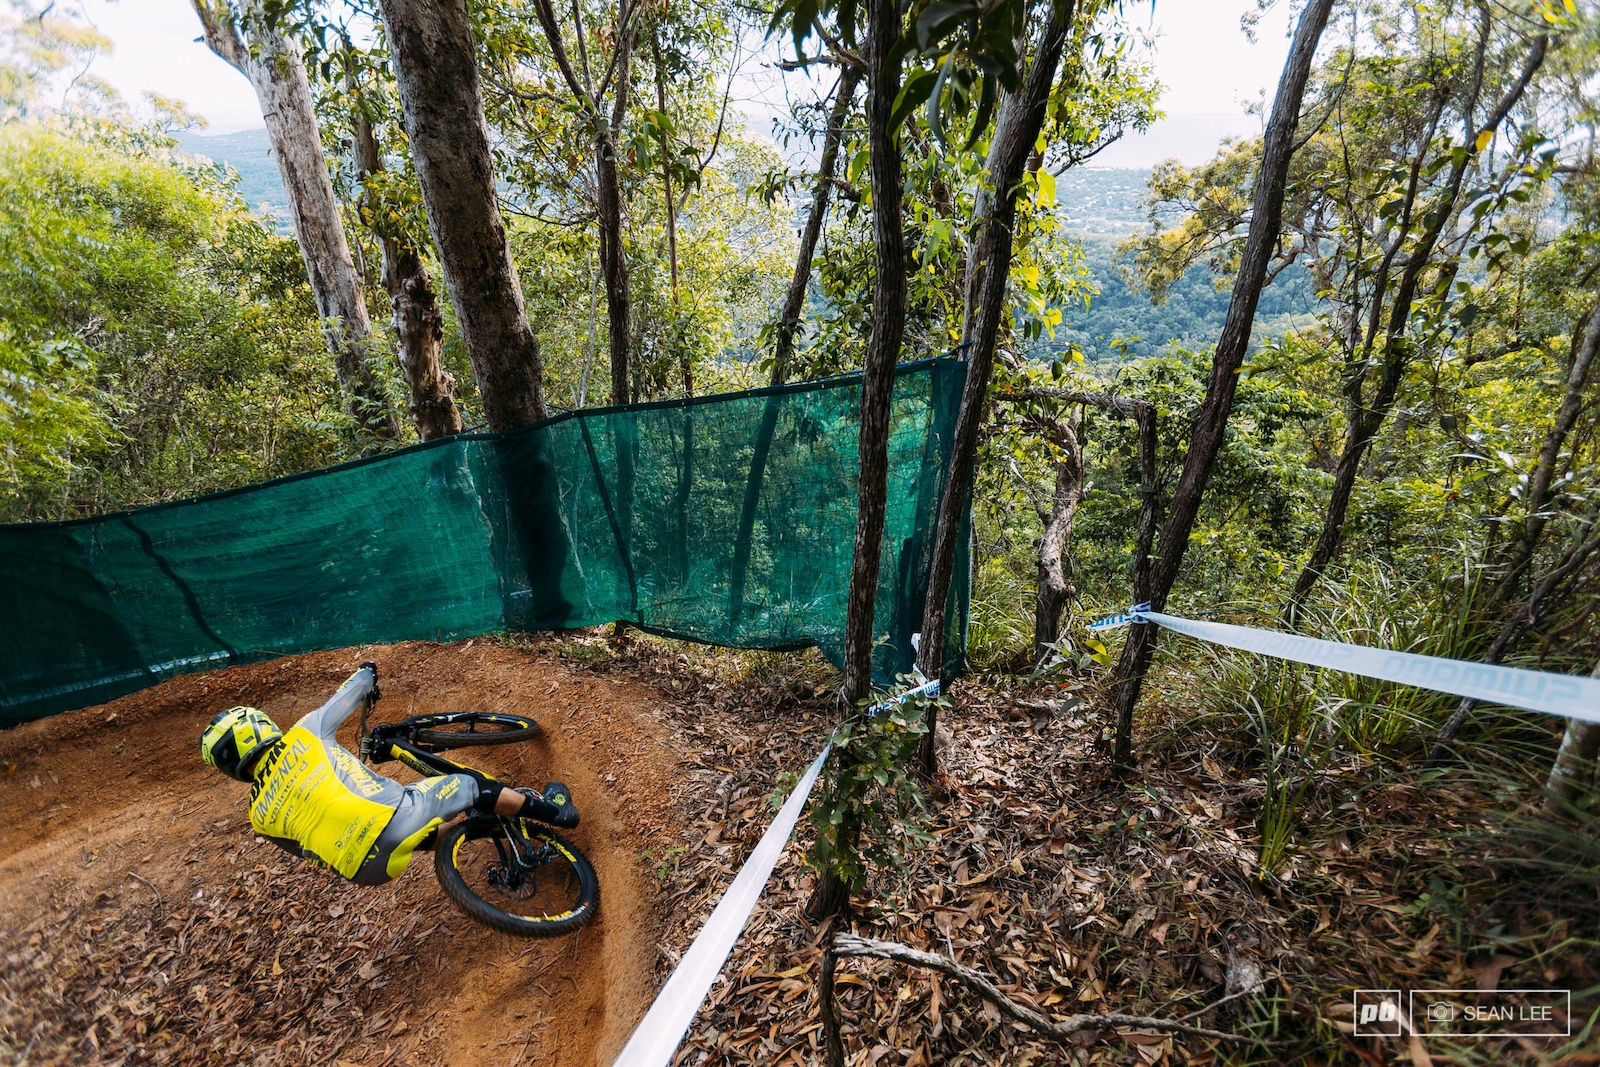 Thibaut Ruffin rails the first berms of the week looking down on the rainforest below.